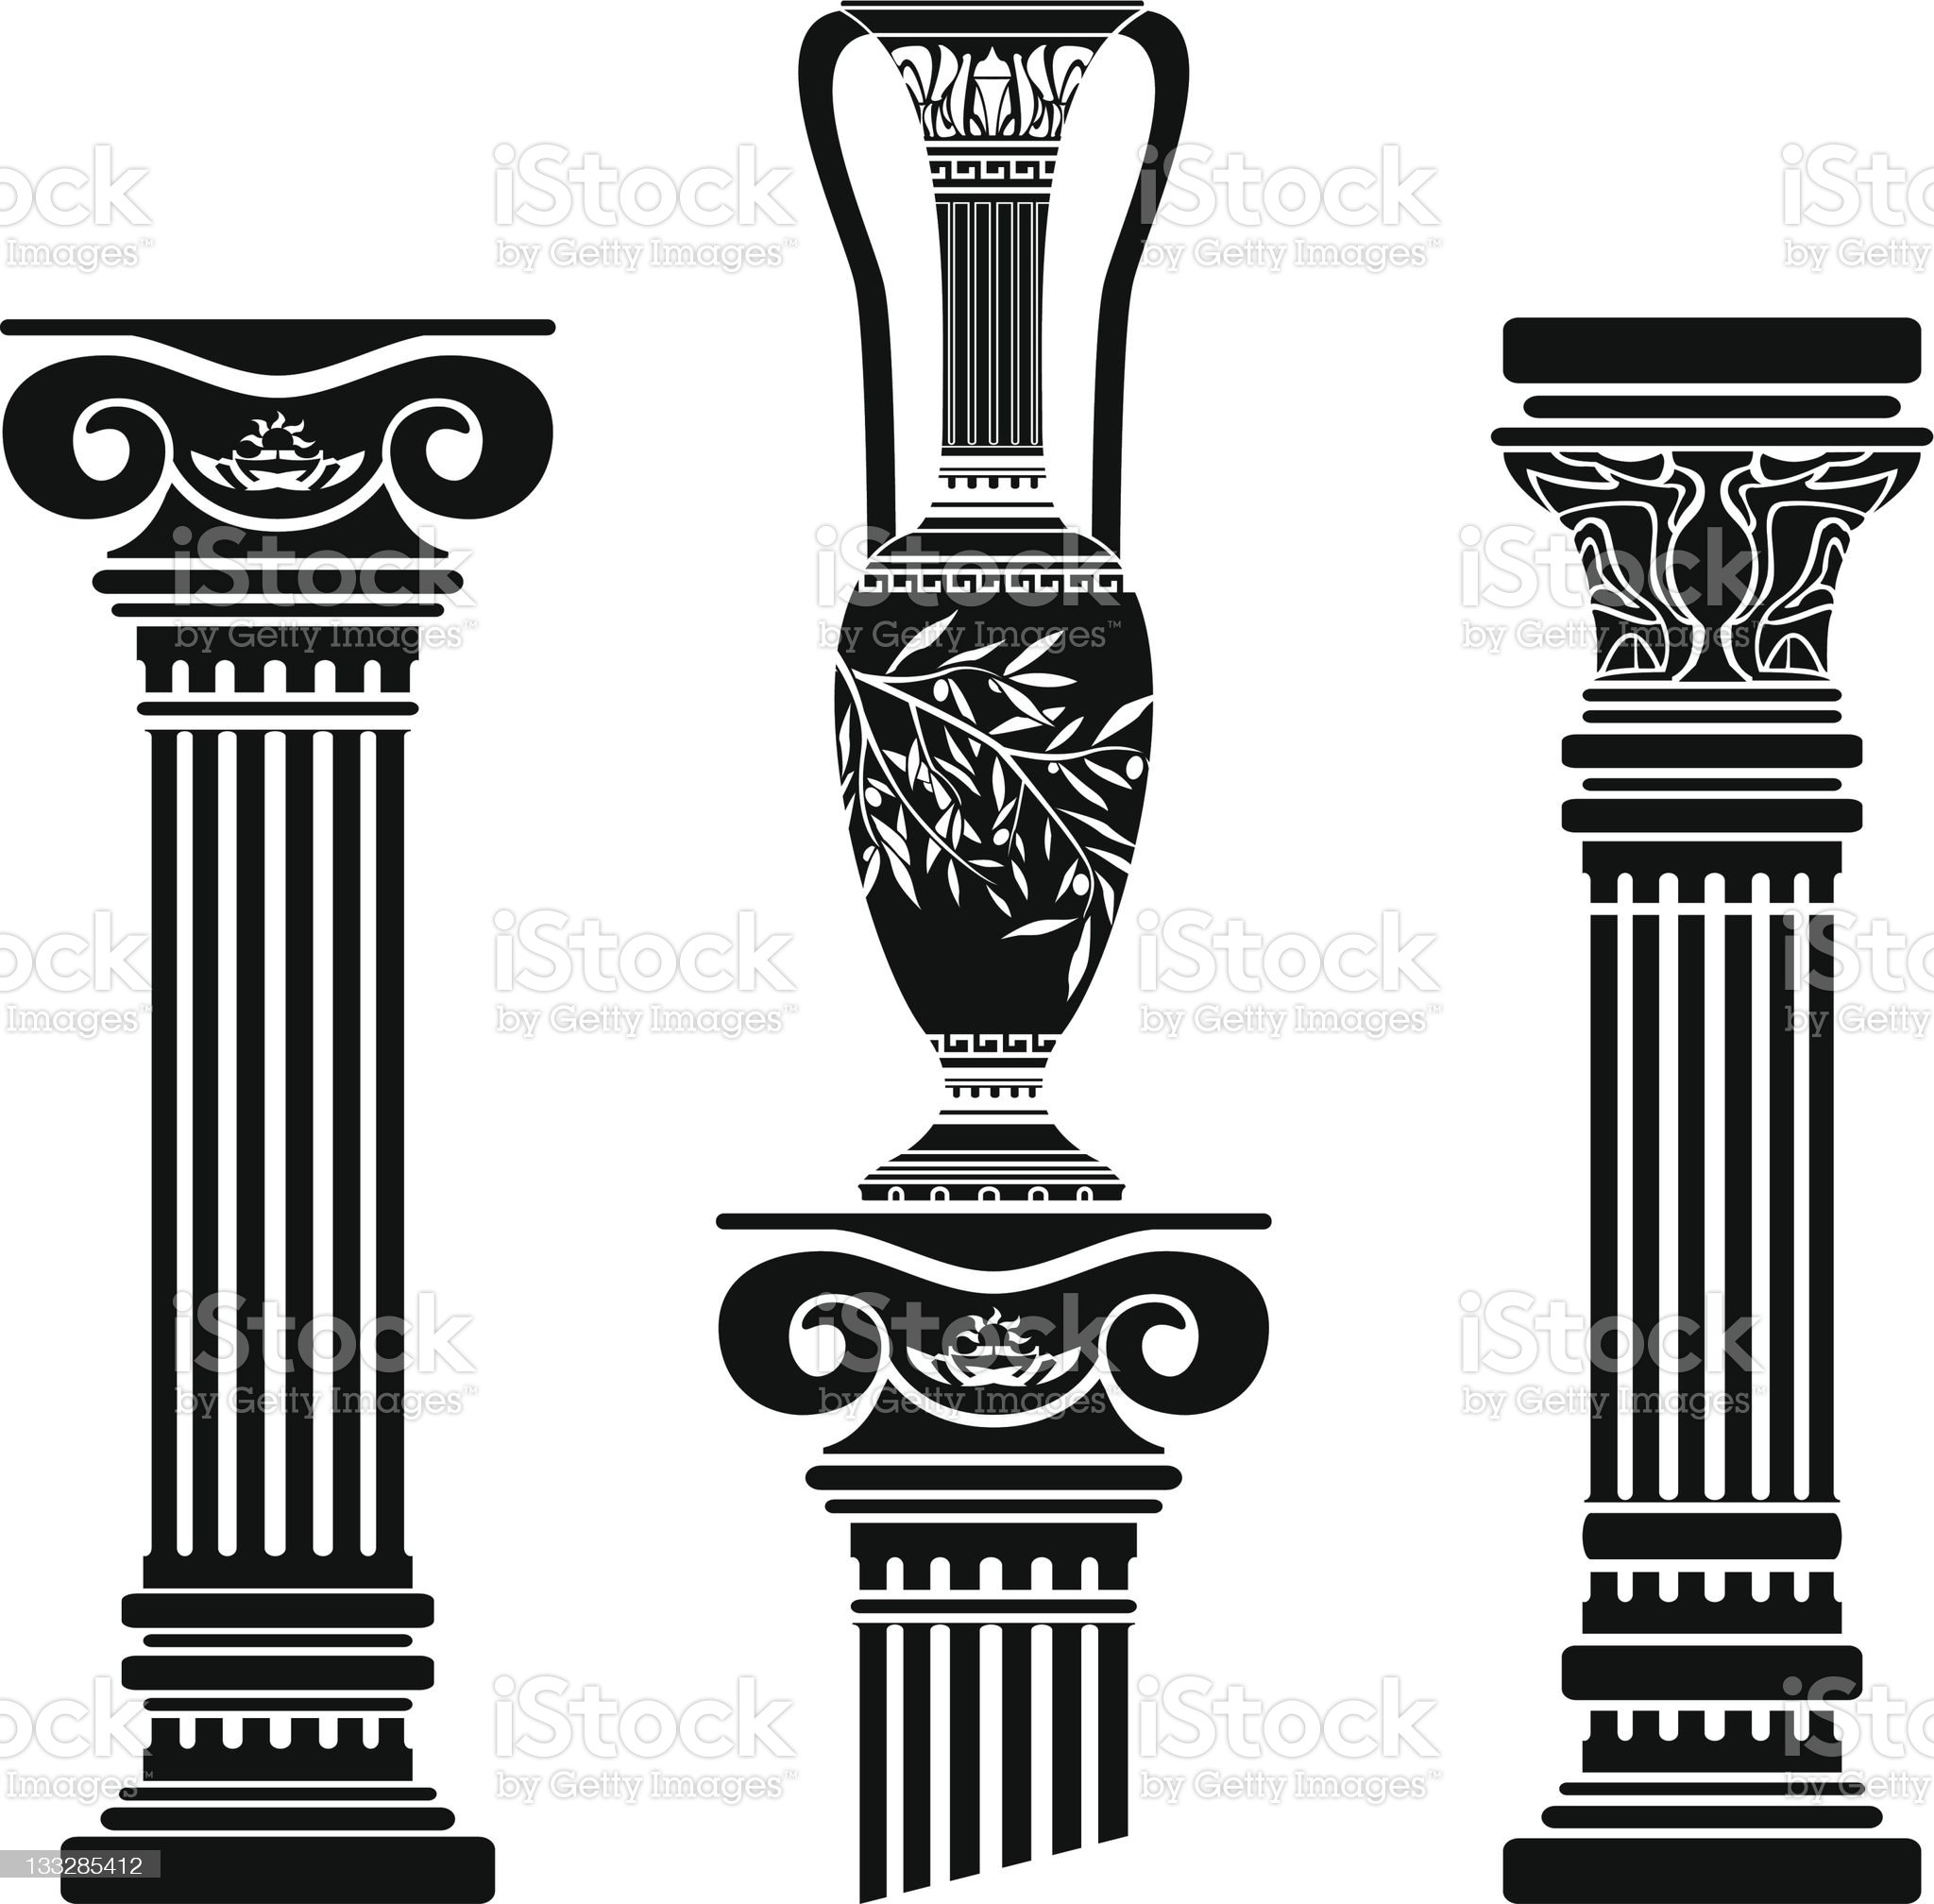 stencils of columns and hellenic jug royalty-free stock vector art